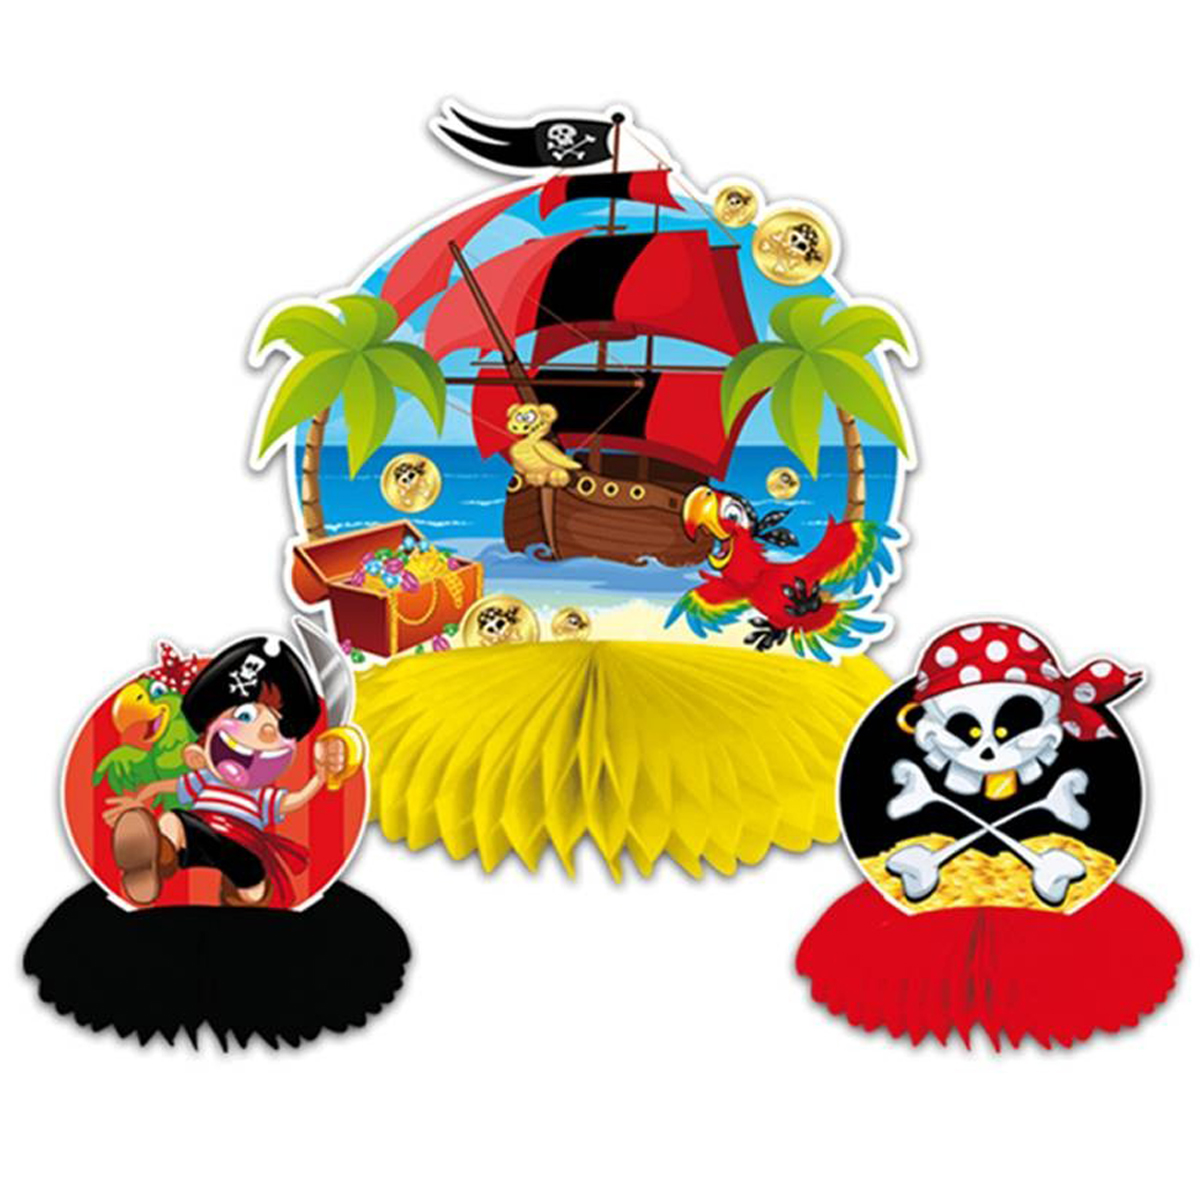 Centre de table \'Pirate\' multicolore - 24x22 cm (3 pièces) - [Q5968]